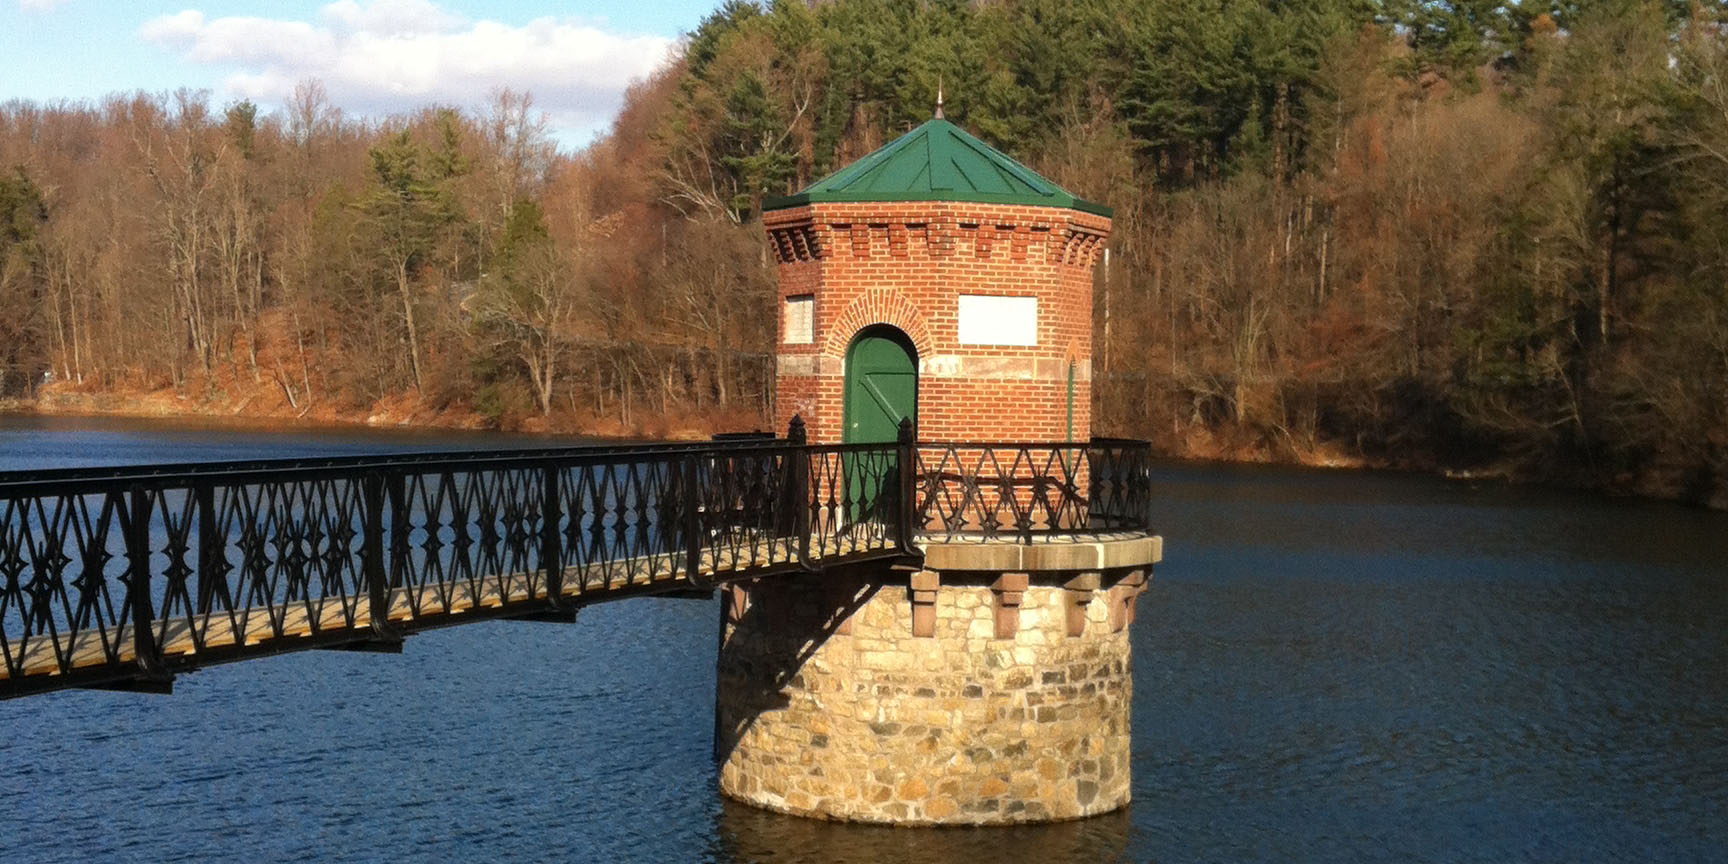 Antietam Lake County Park – Alsace and Lower Alsace Townships, Berks County